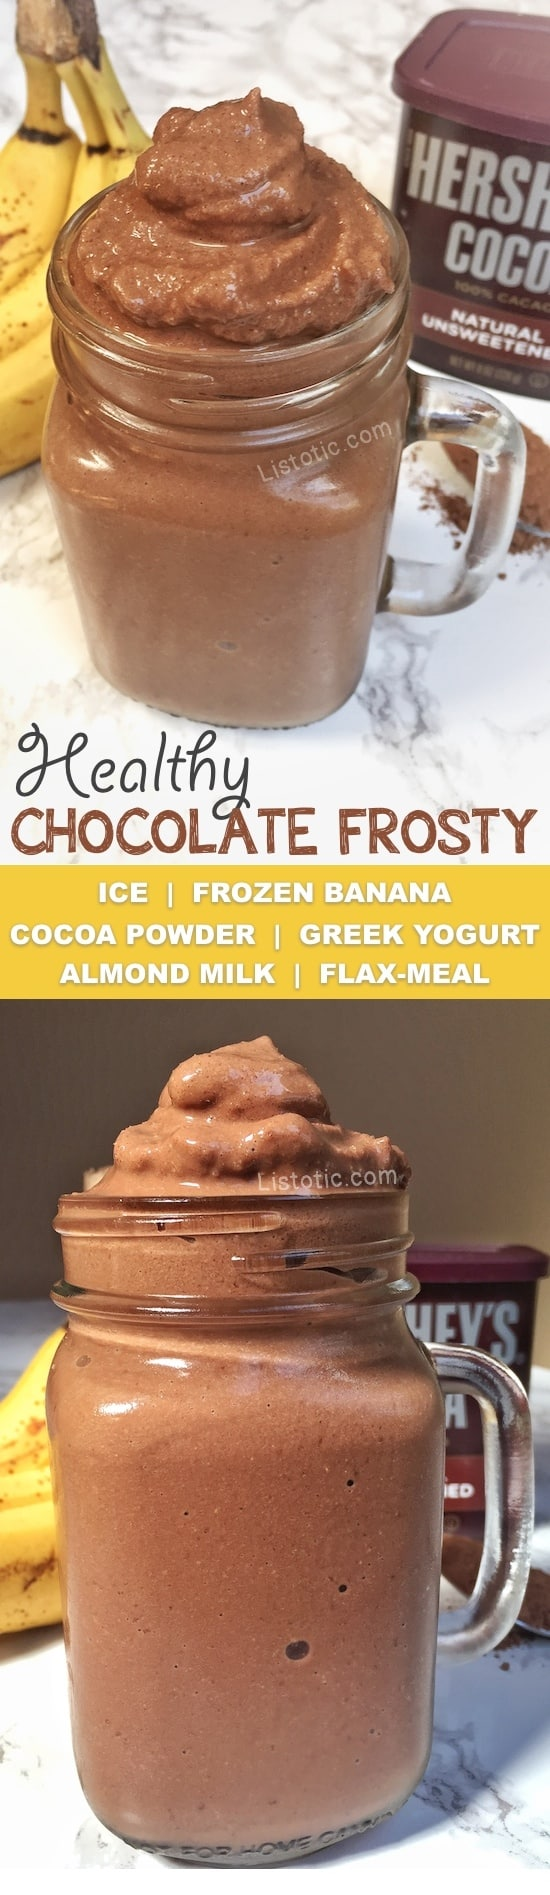 Healthy chocolate frosty ice cream recipe that tastes just like Wendy's! My kids love this thick milkshake/soft serve and have no idea that it's actually a healthy snack! Listotic.com